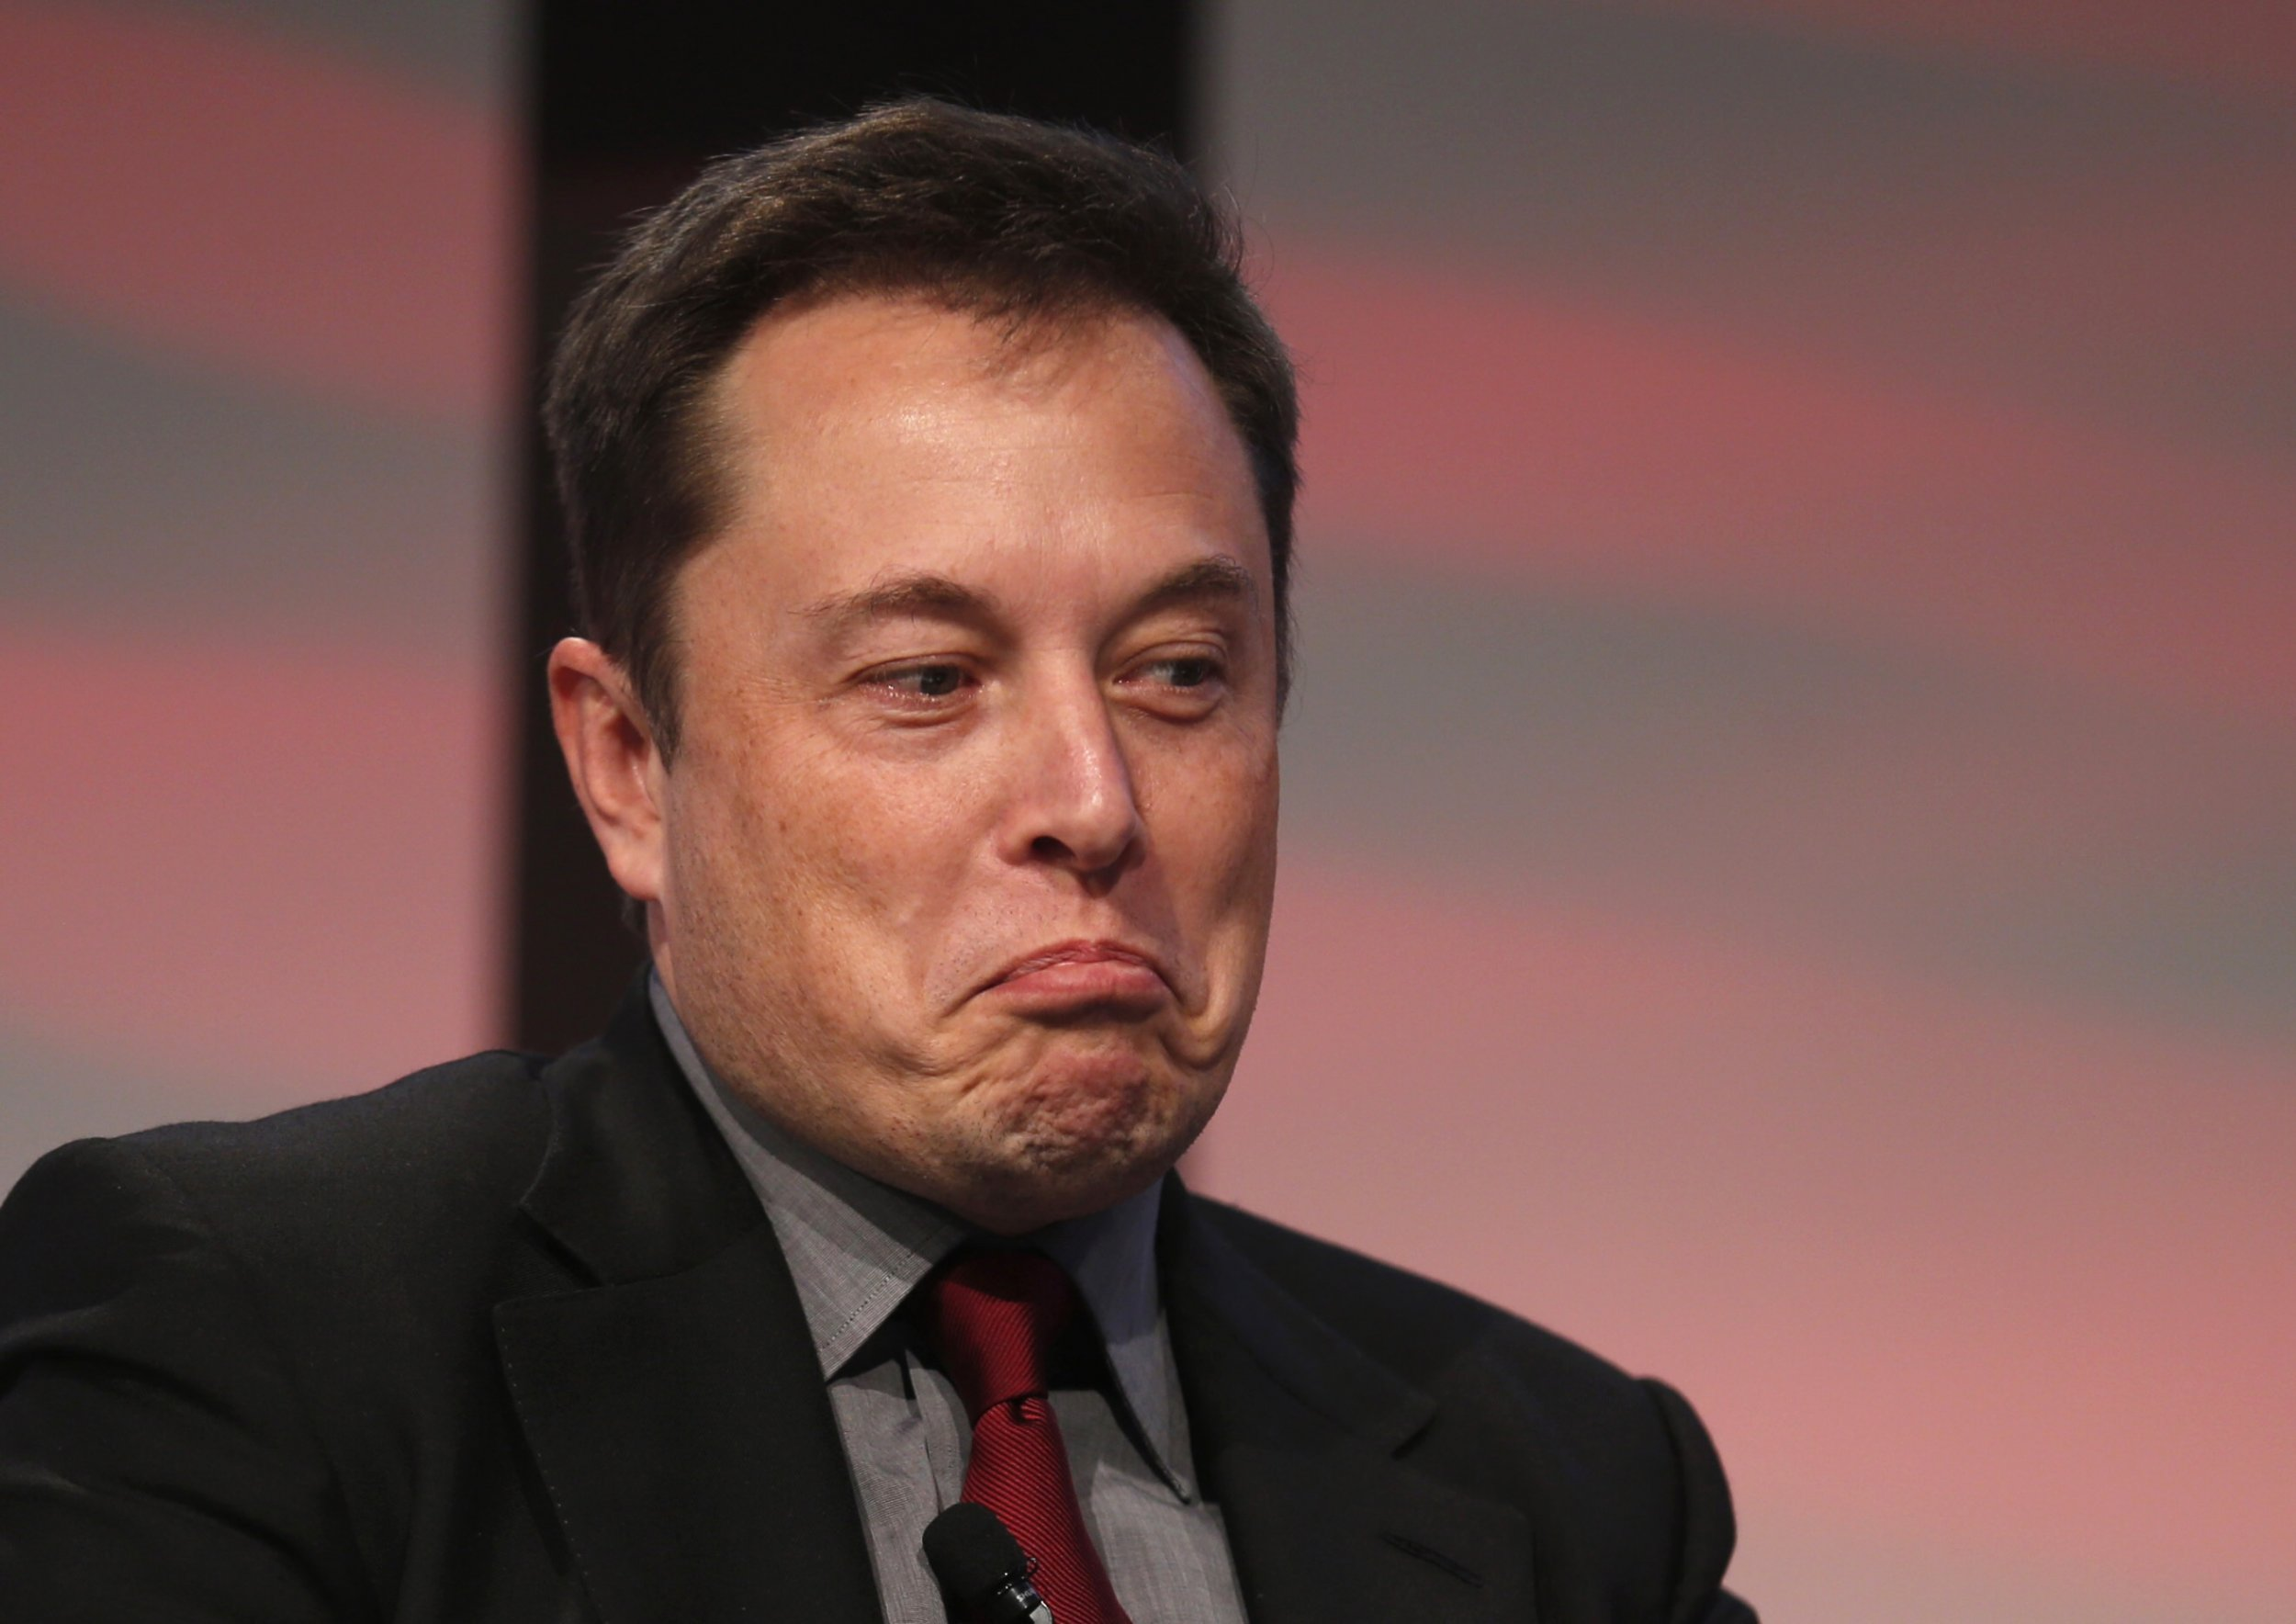 Elon- and why not